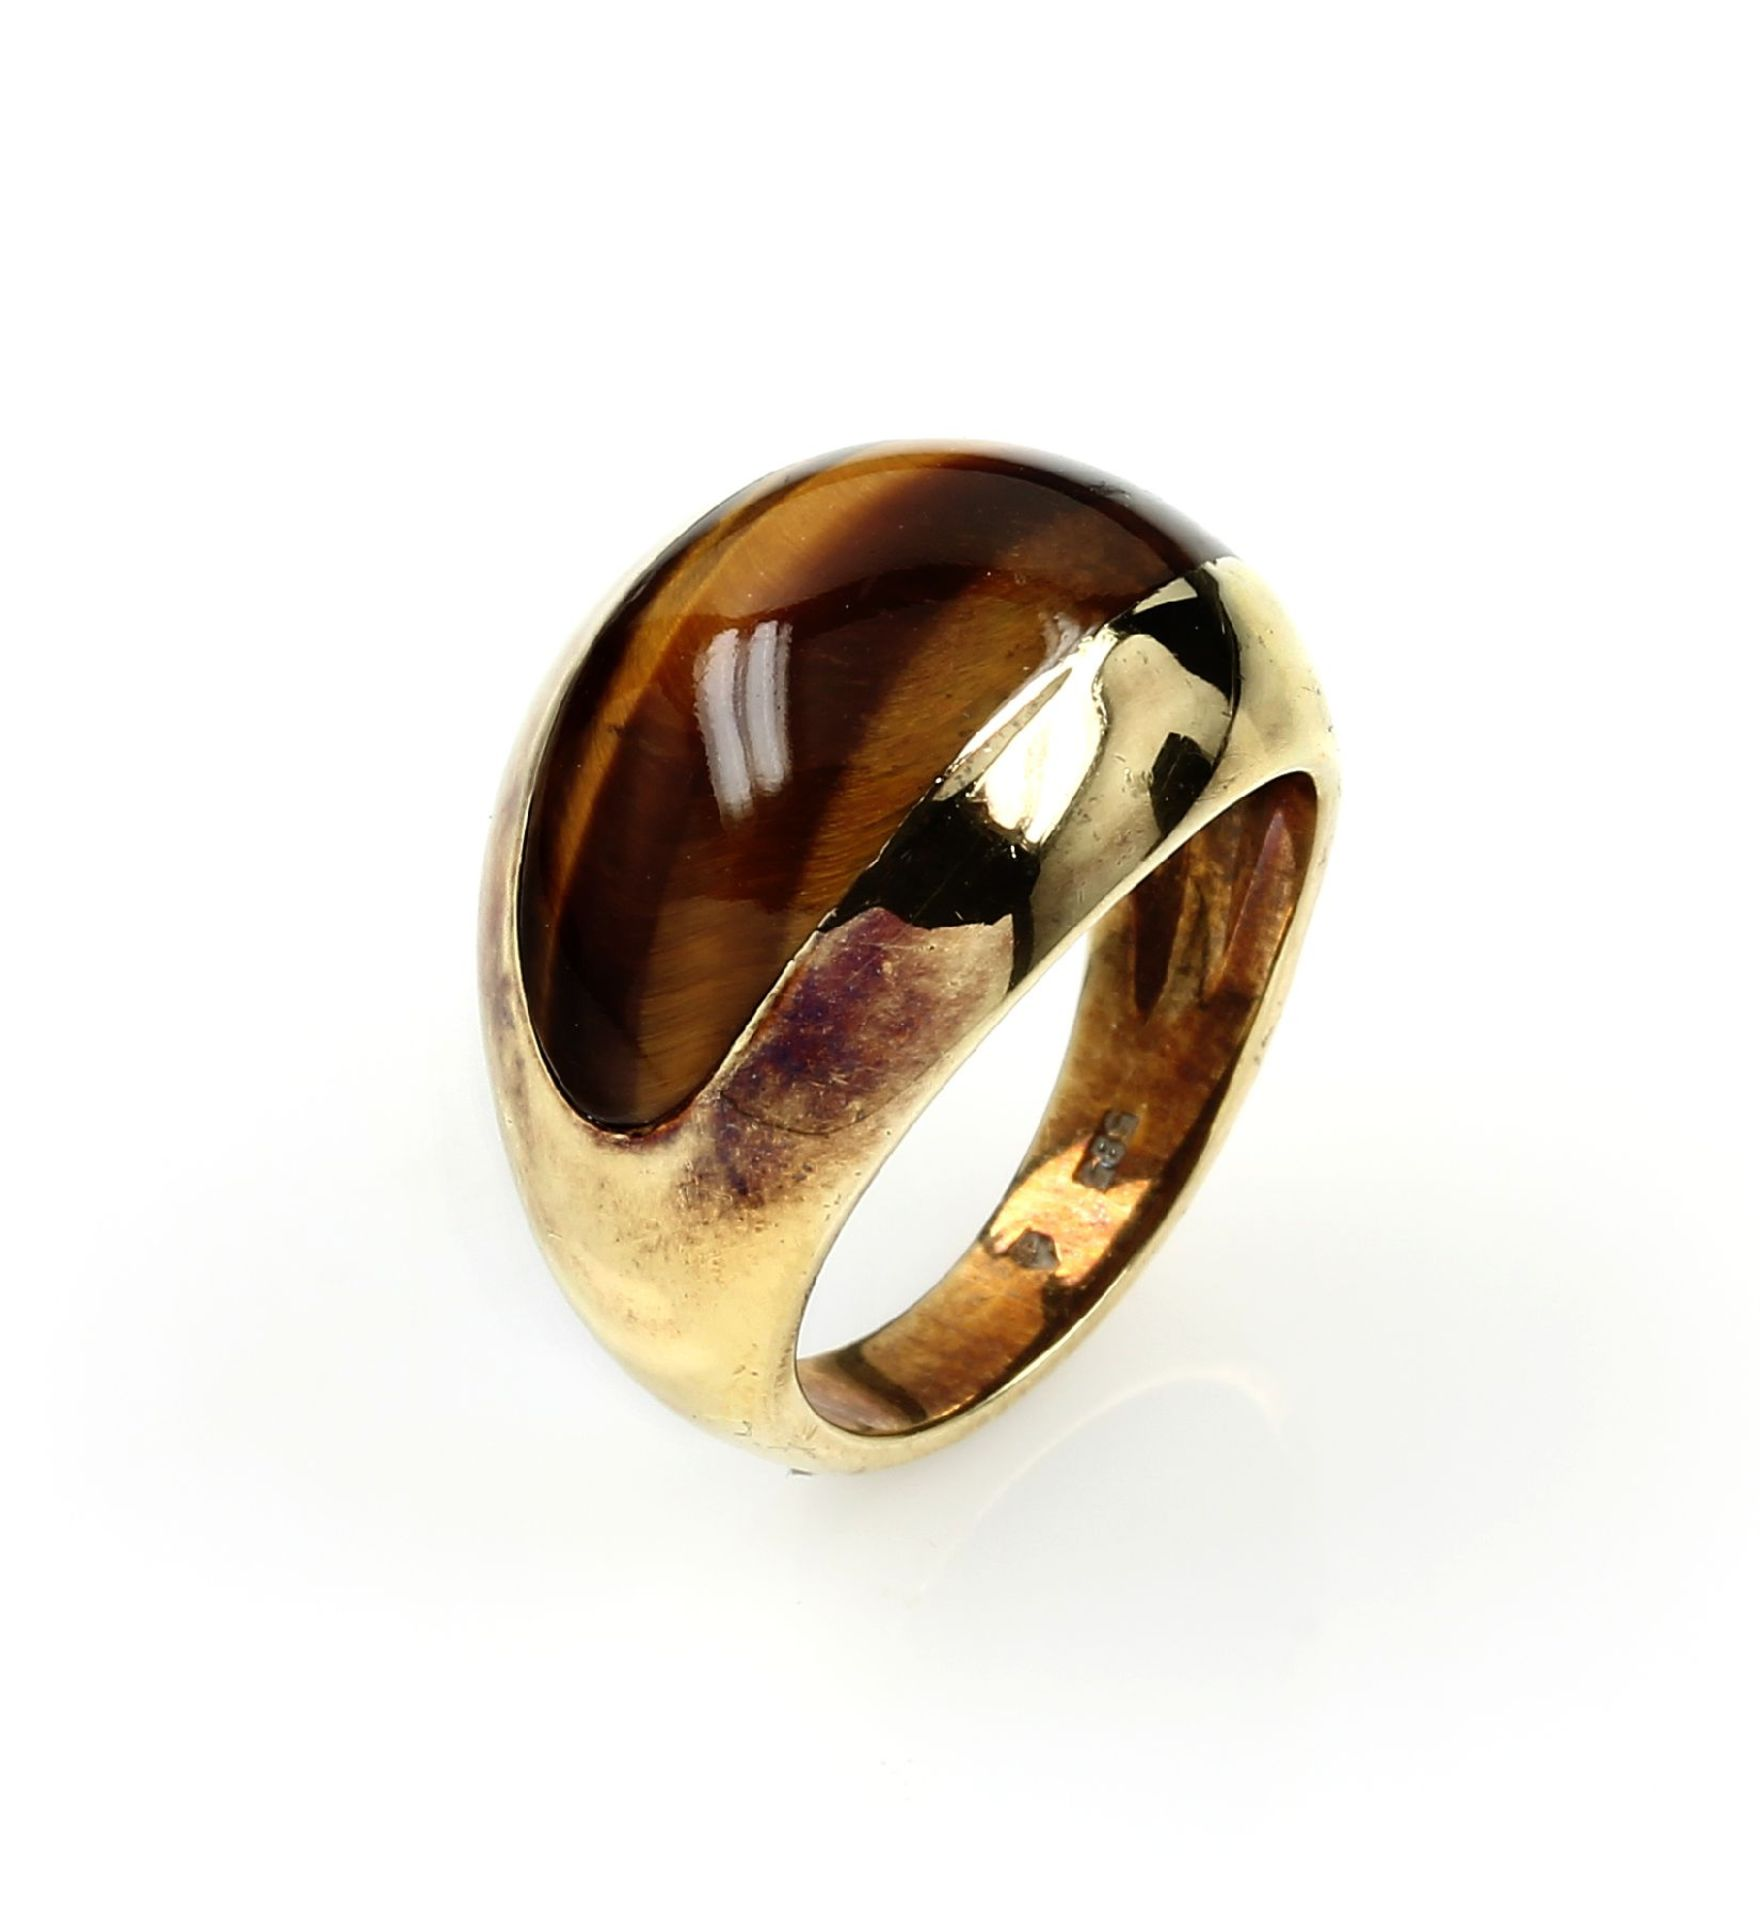 Los 61554 - 18 kt gold ring with tiger's eye , YG 750/000, centered tigers eye inlay, ringsize 52, approx. 8.2